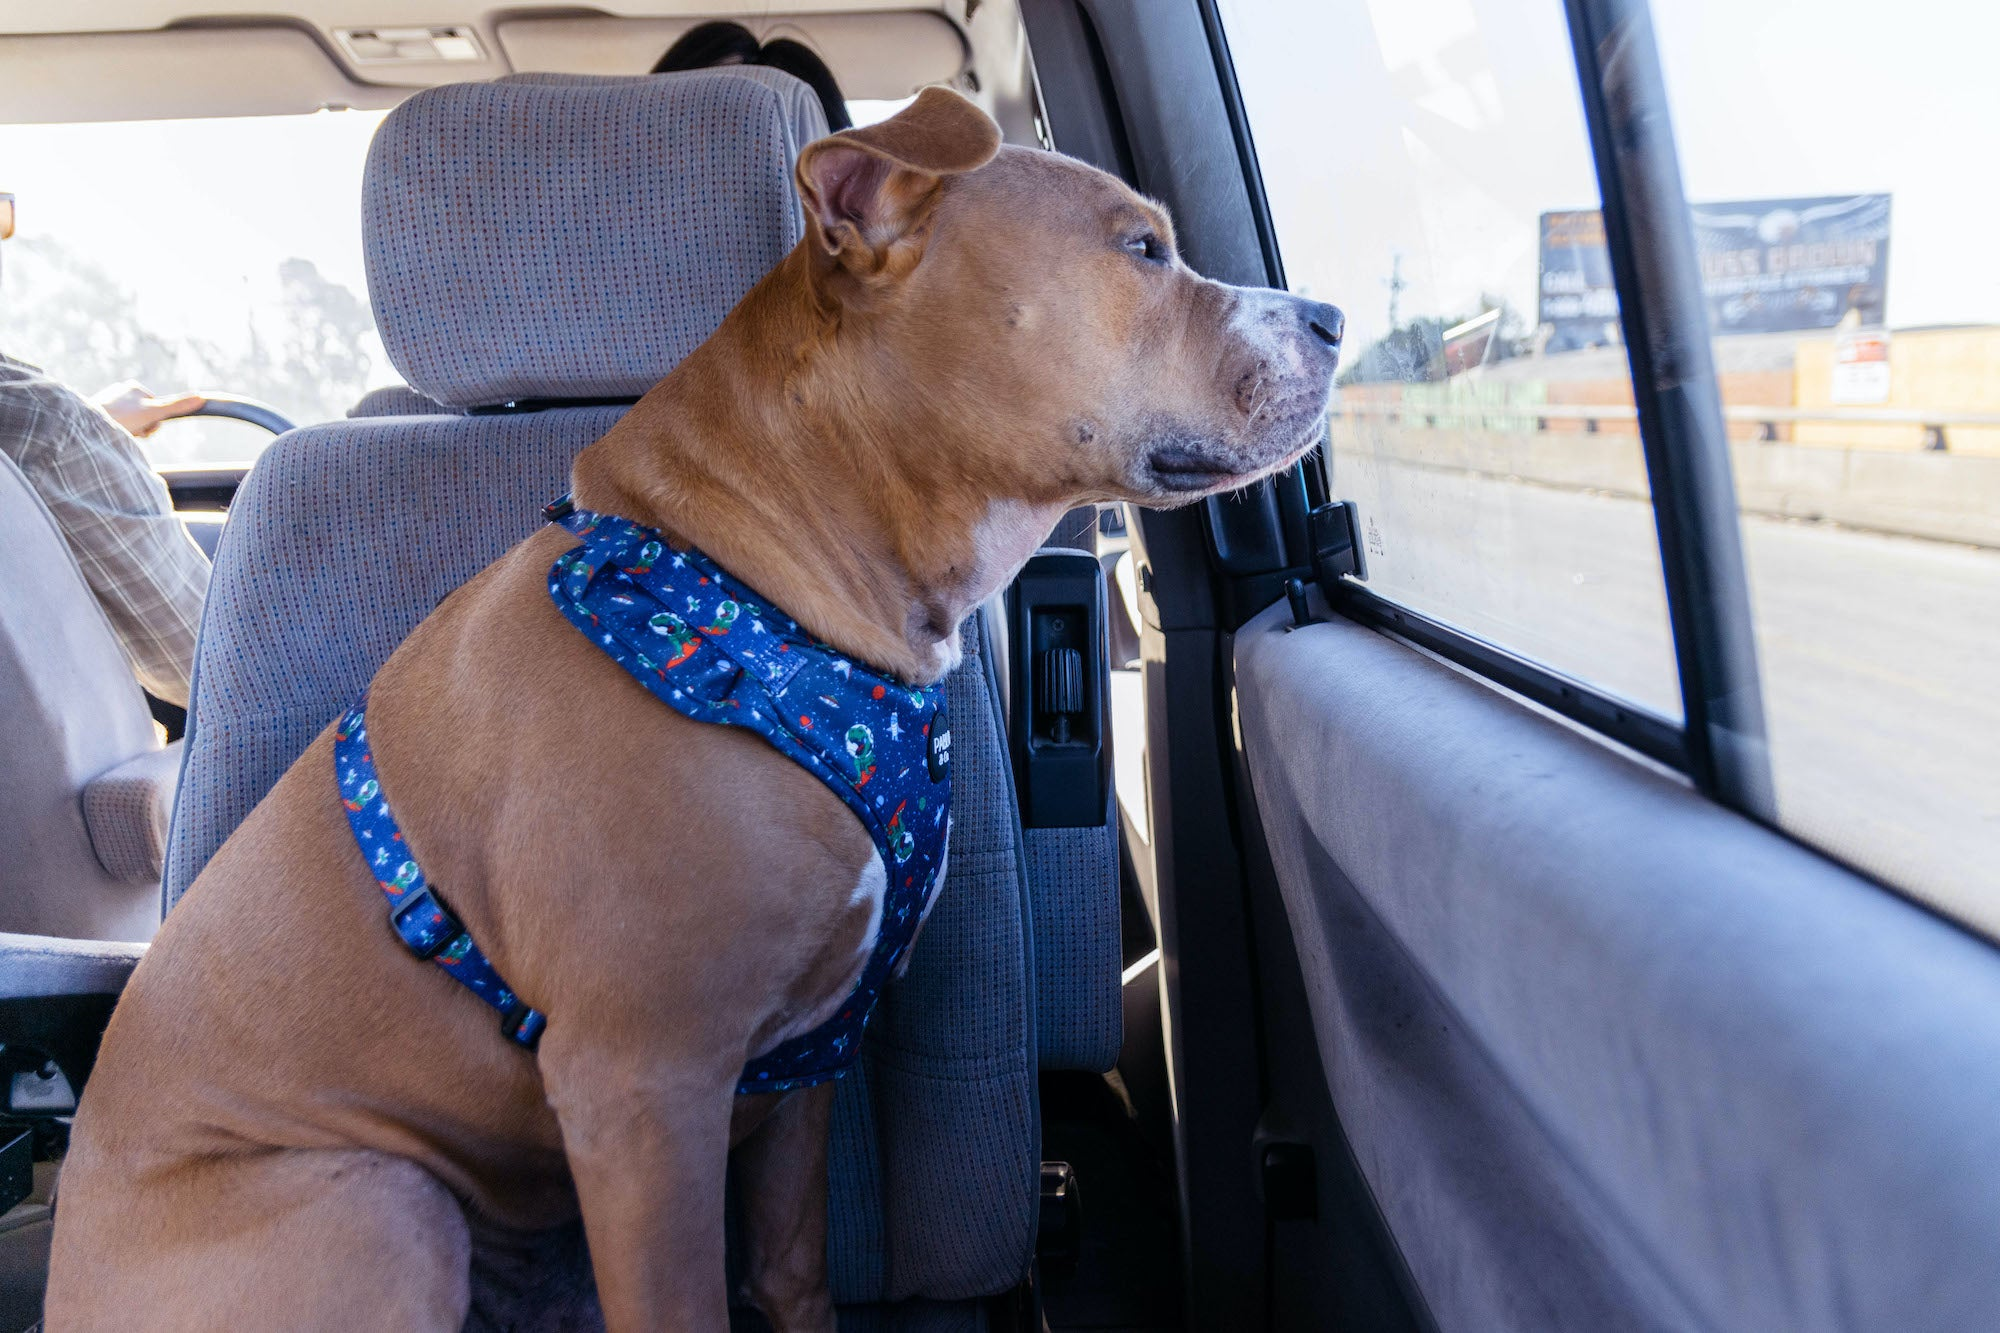 Cute dog wearing Pablo & Co. Space Dinos harness and seatbelt.